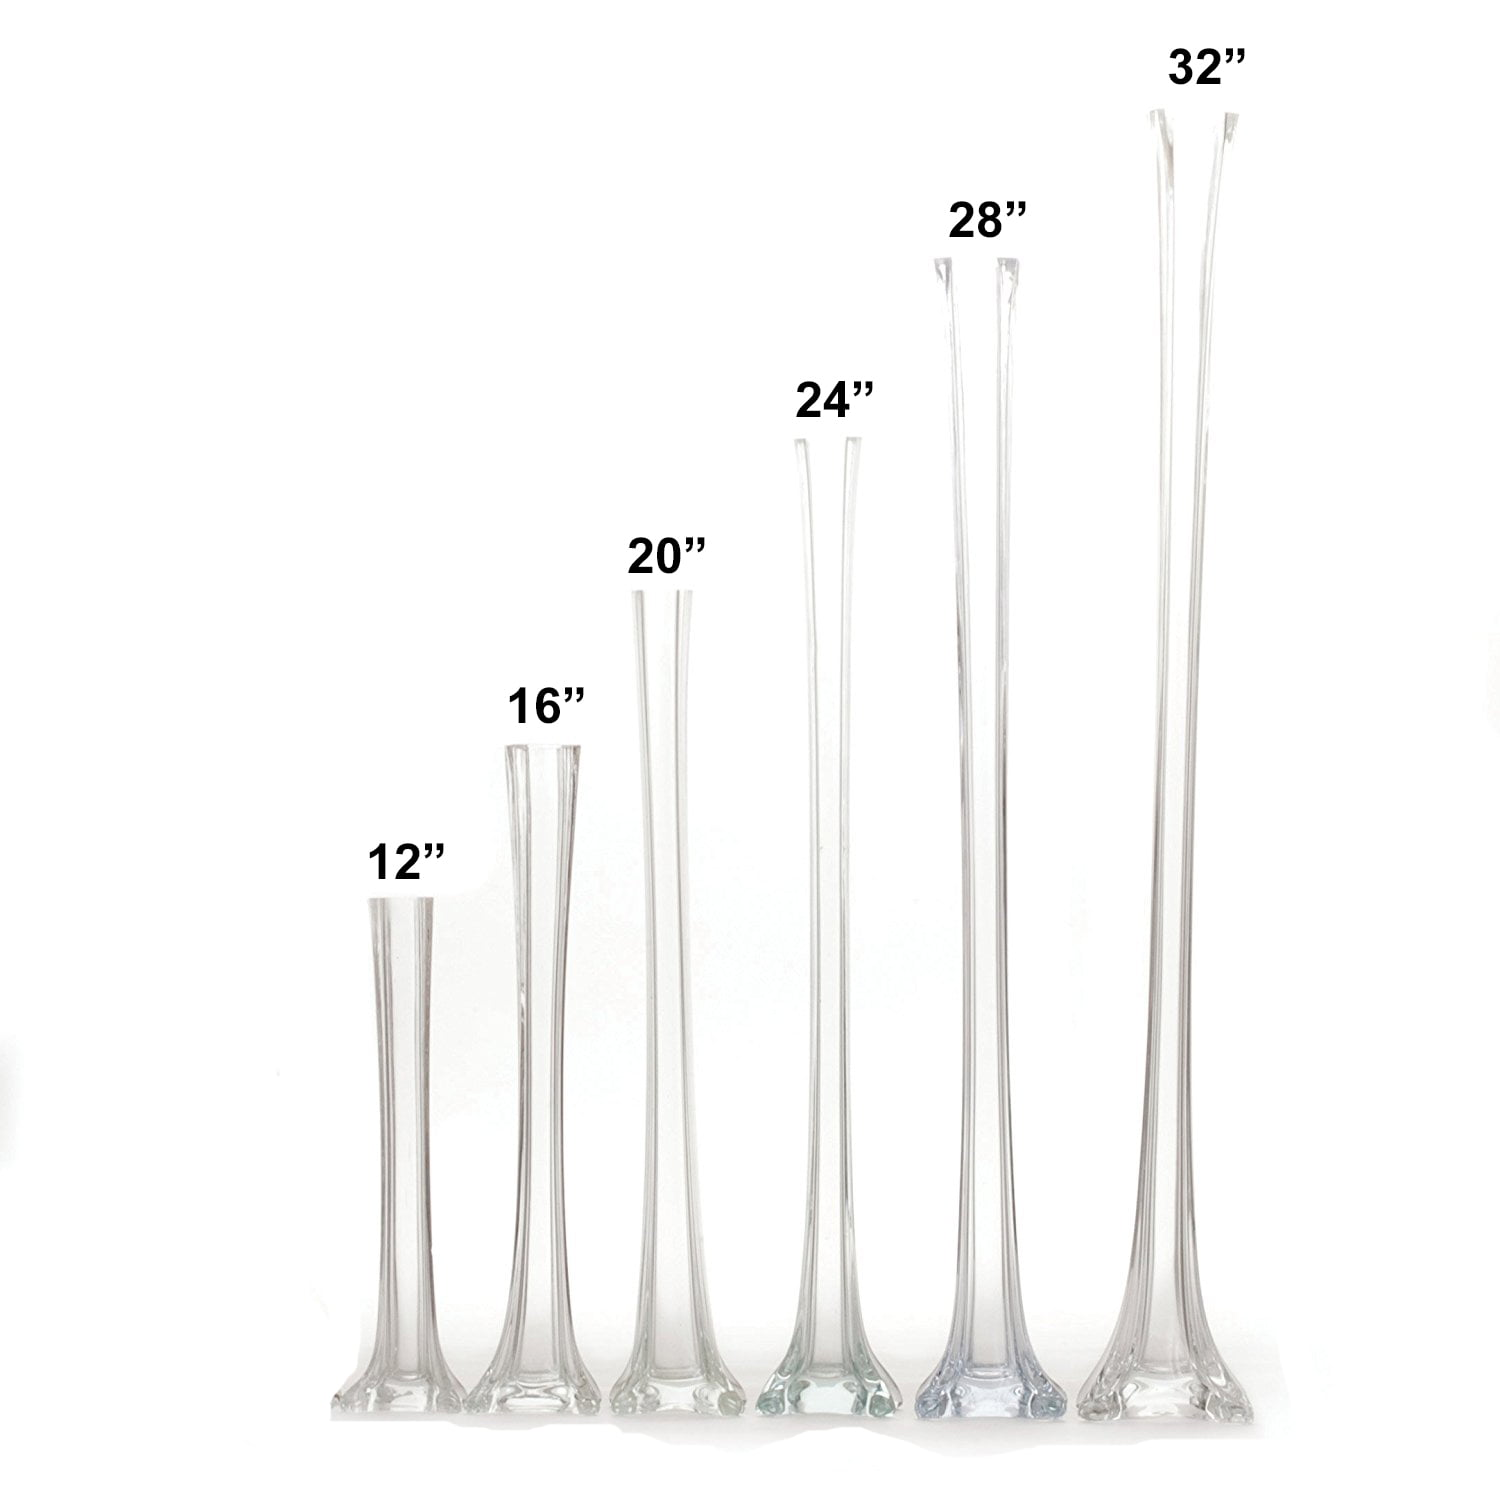 "12 Home Decor Gift Ideas From Walmart: Set Of 12 Pieces 12"" Inches Tall Glass Eiffel Tower Vases"